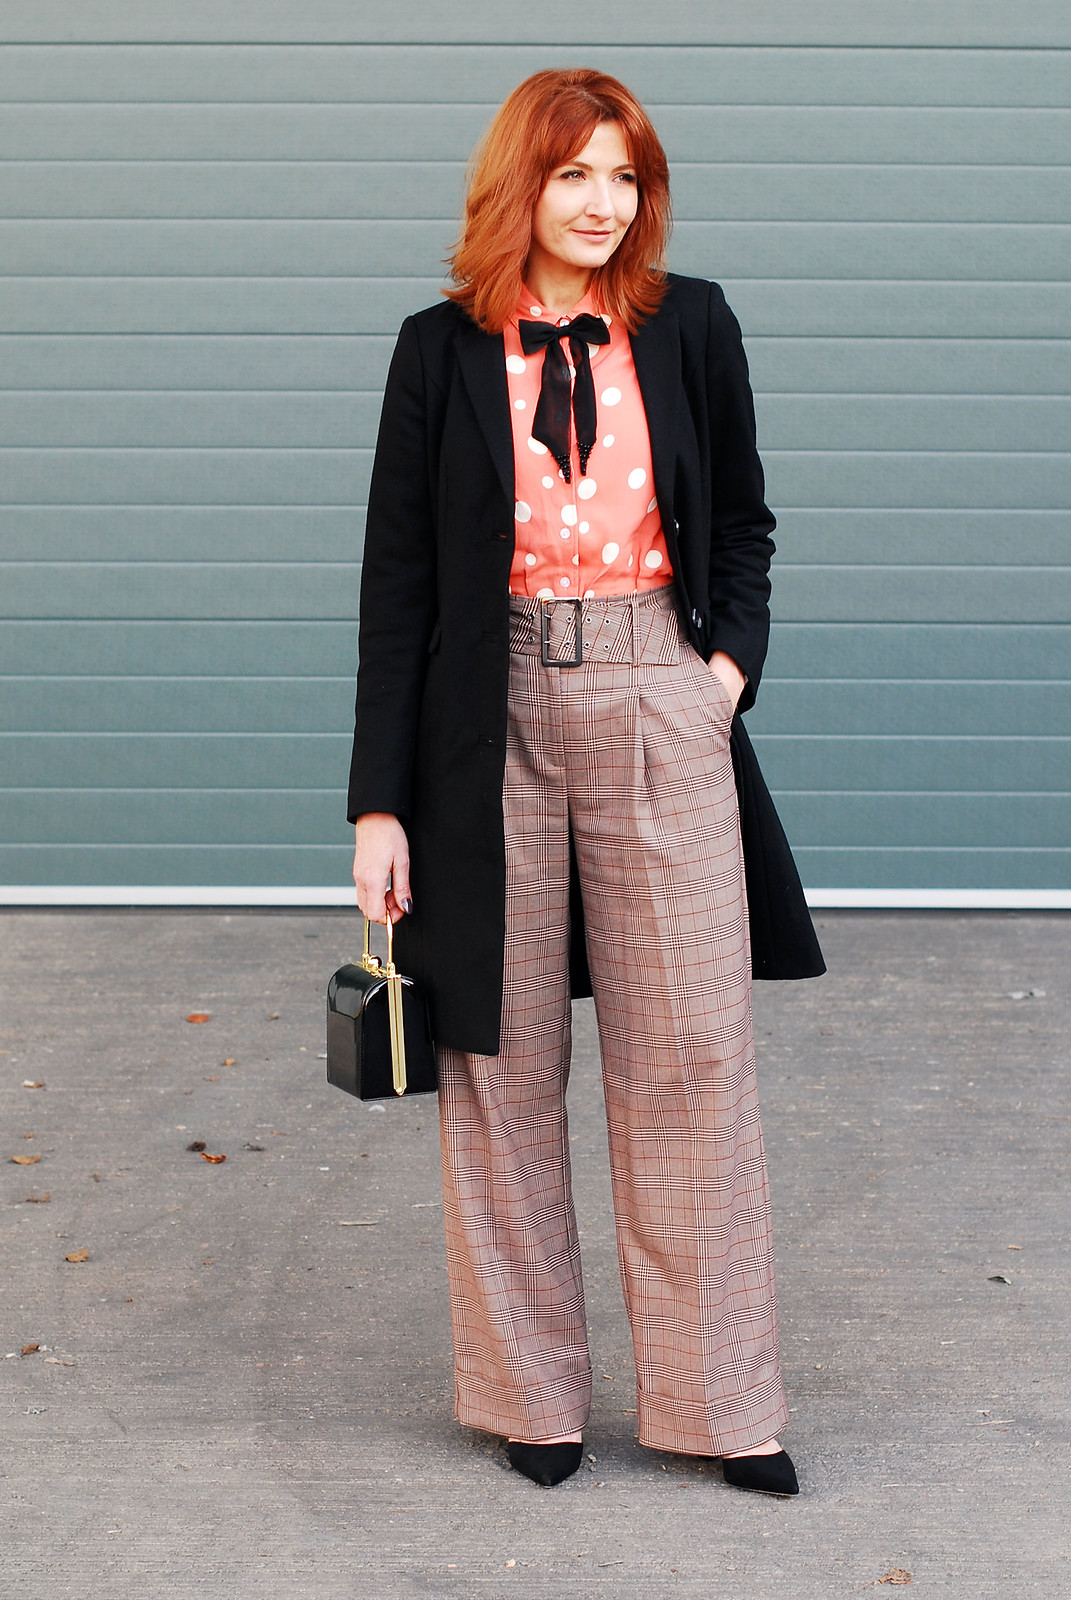 How to get the Katharine Hepburn look: Wide leg check turn up trousers \ masculine-cut black coat \ polka dot blouse with embellished black bow neck tie \ black box handbag \ cone-heeled black pointed shoes | Not Dressed As Lamb, over 40 style